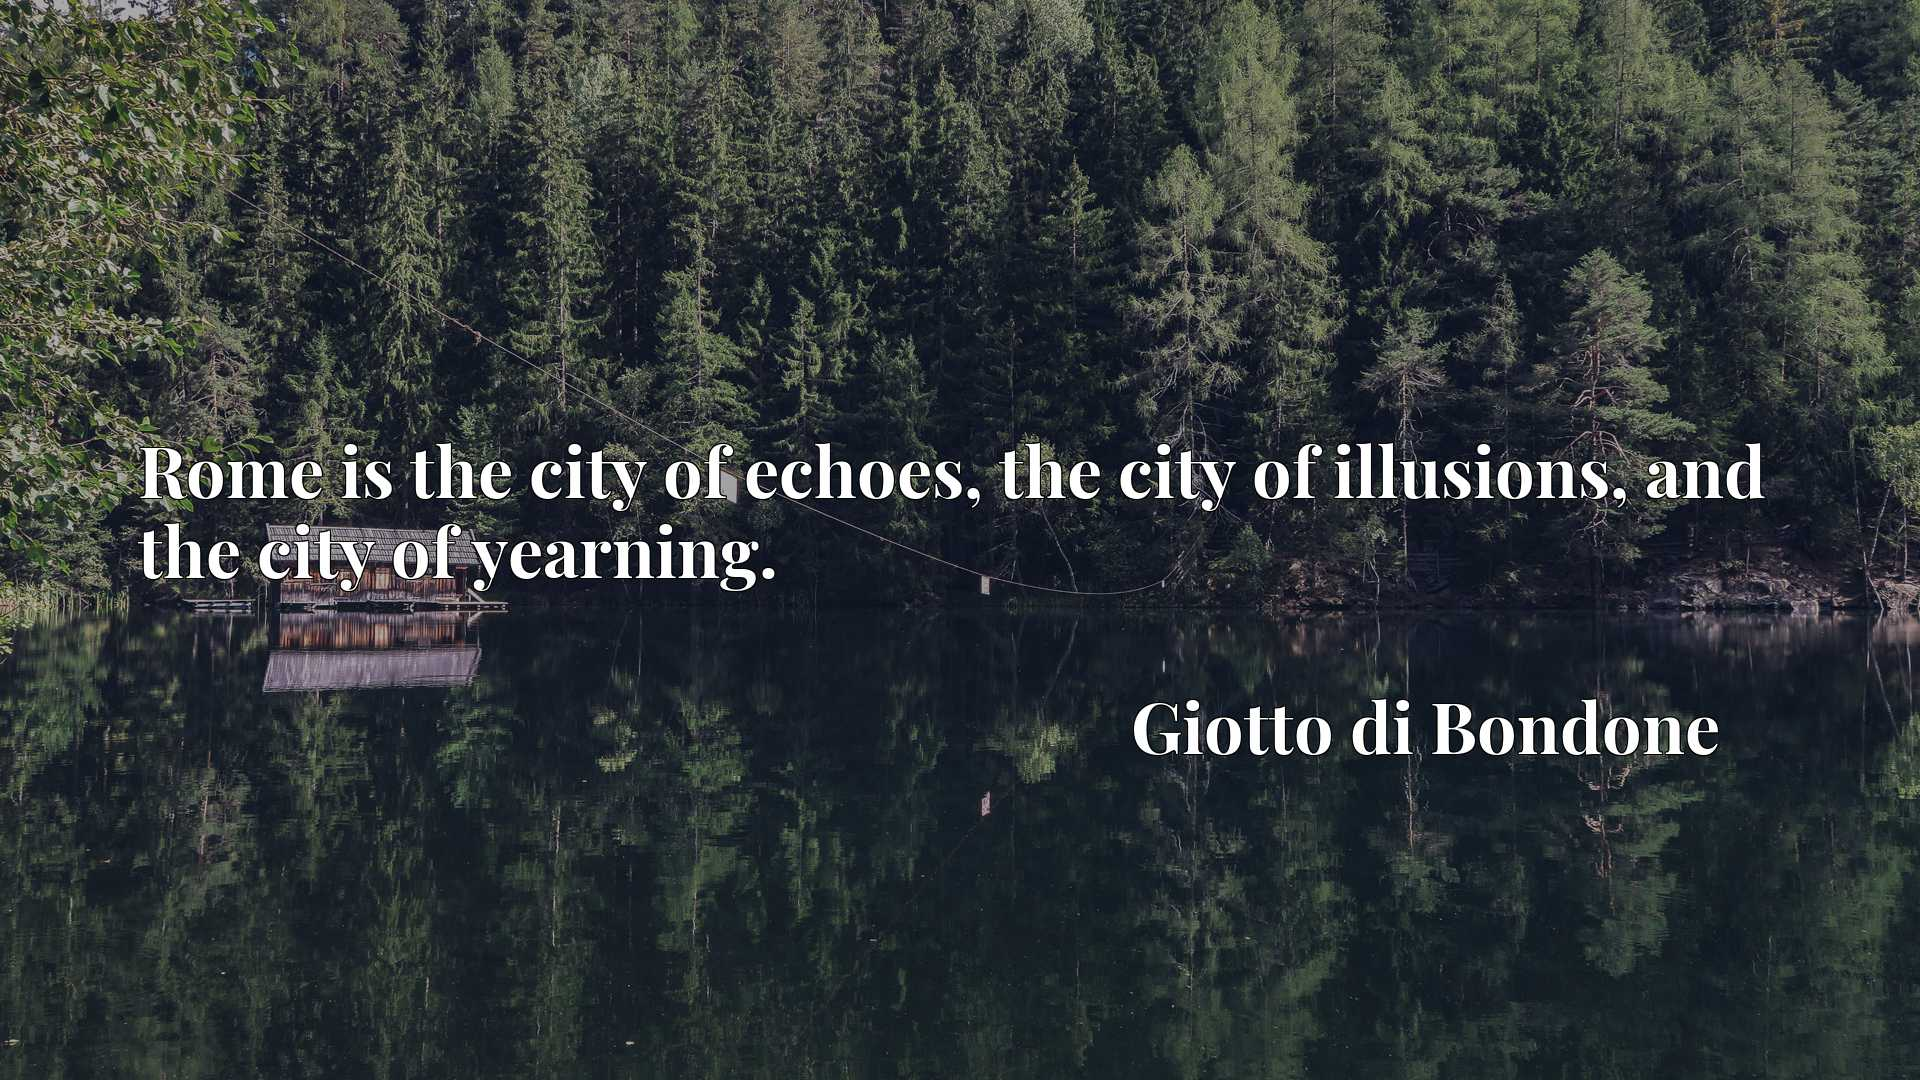 Rome is the city of echoes, the city of illusions, and the city of yearning.